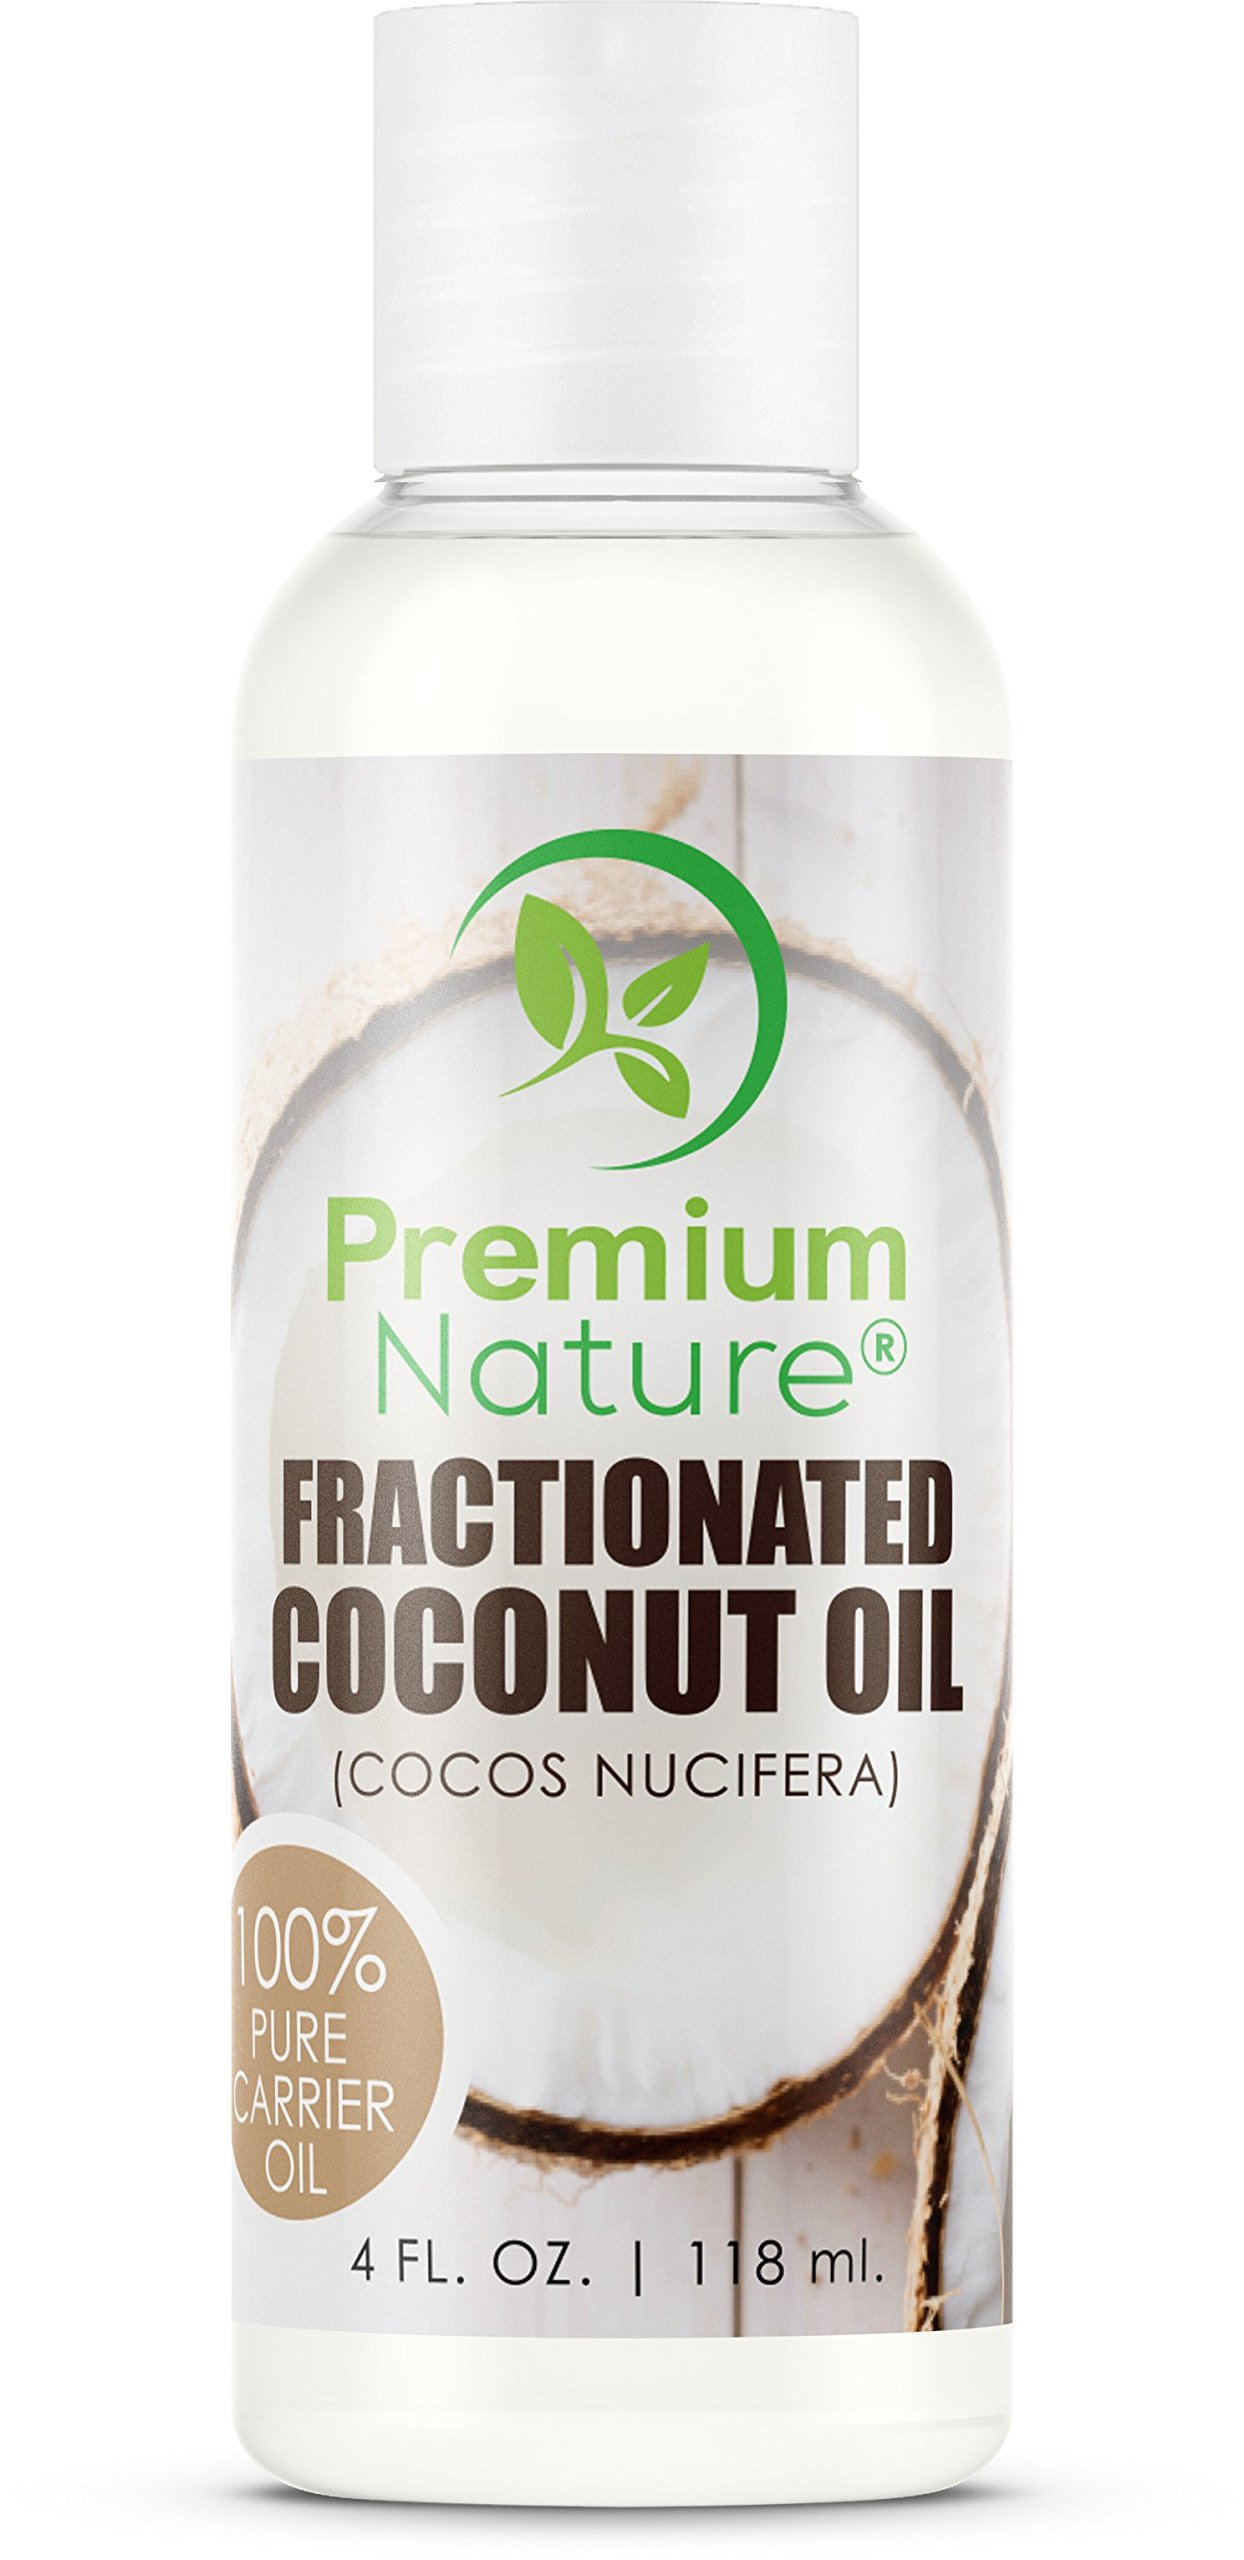 Fractionated Coconut Oil Massage Oils - Liquid MCT Natural & Pure Body Oil Carrier Massage Oil - for Hair & Skin 4 Oz Clear Premium Nature